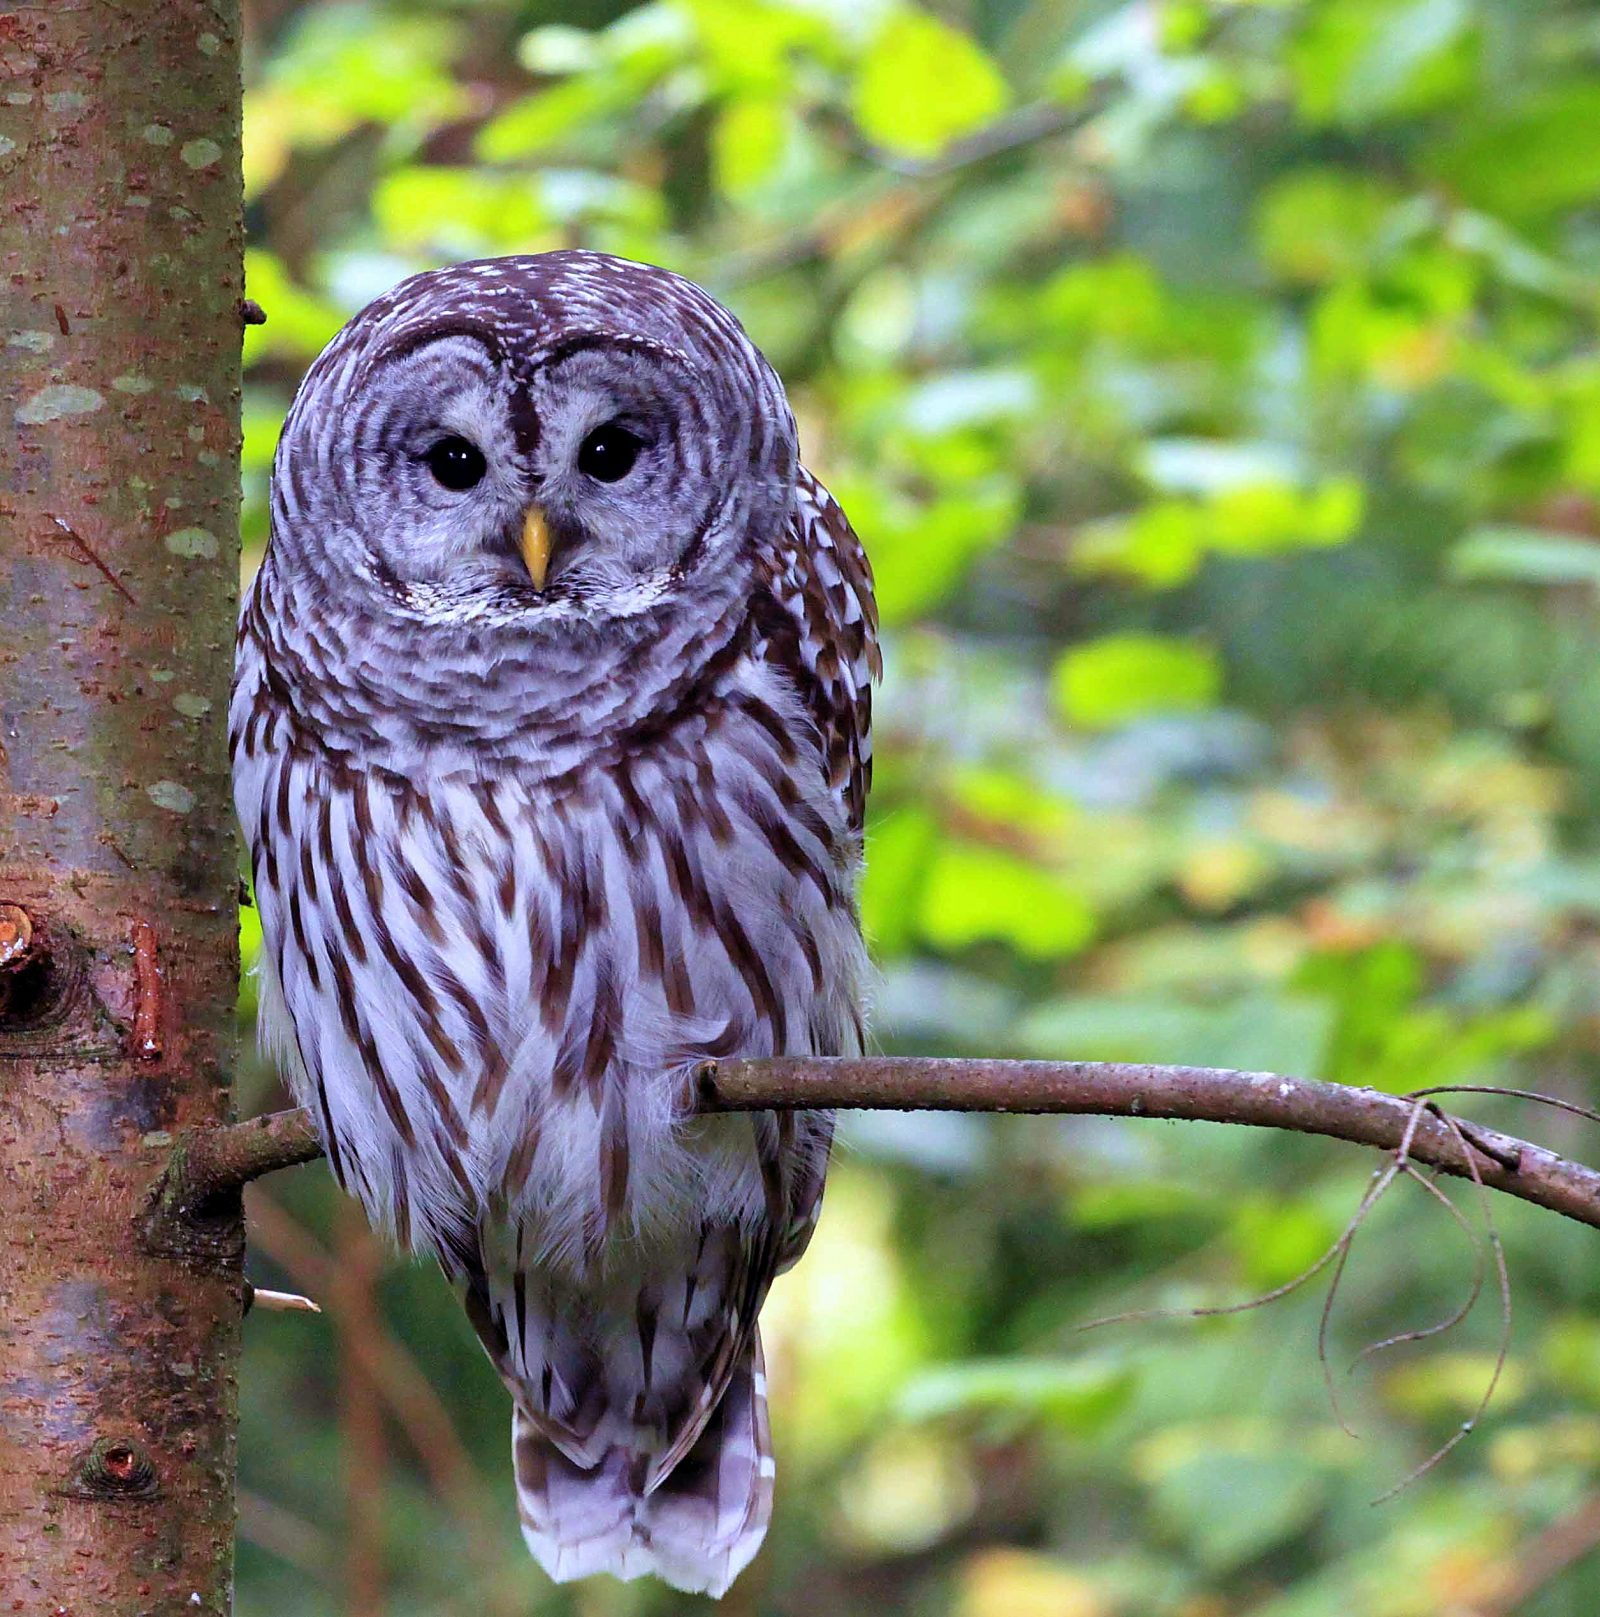 Bob, our resident male Barred owl